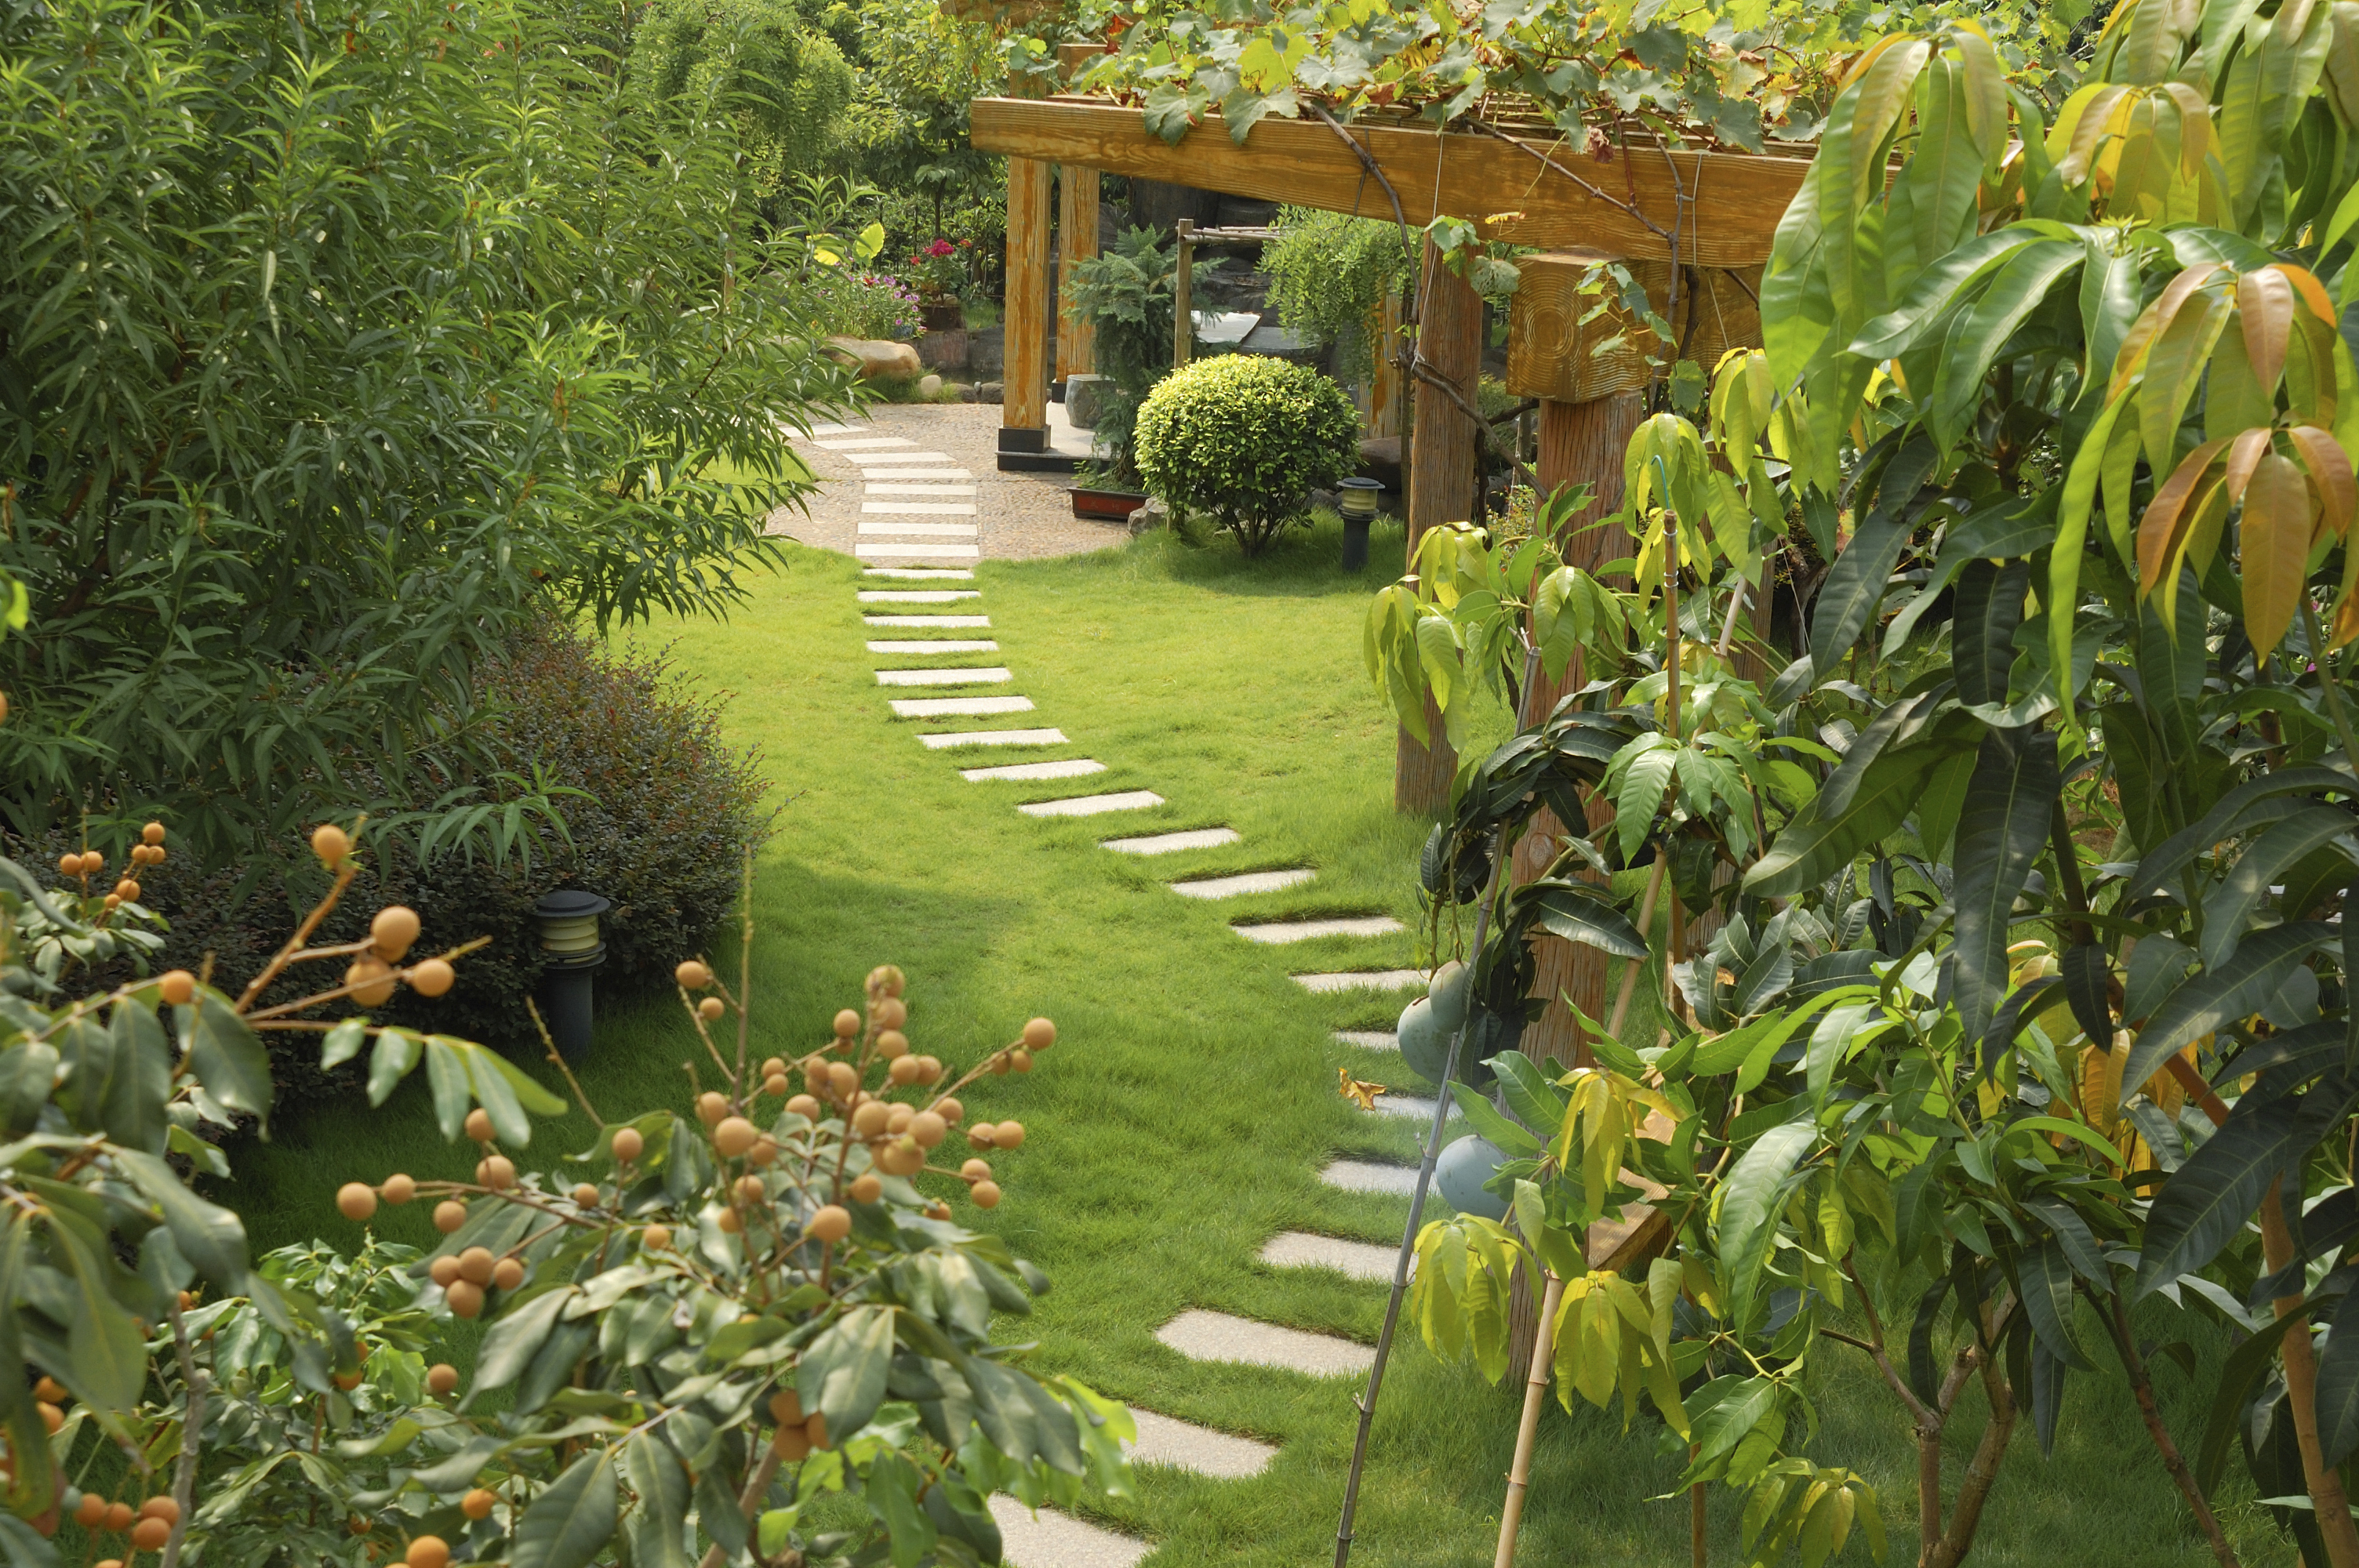 Garden | Designbuzz : Design ideas and concepts